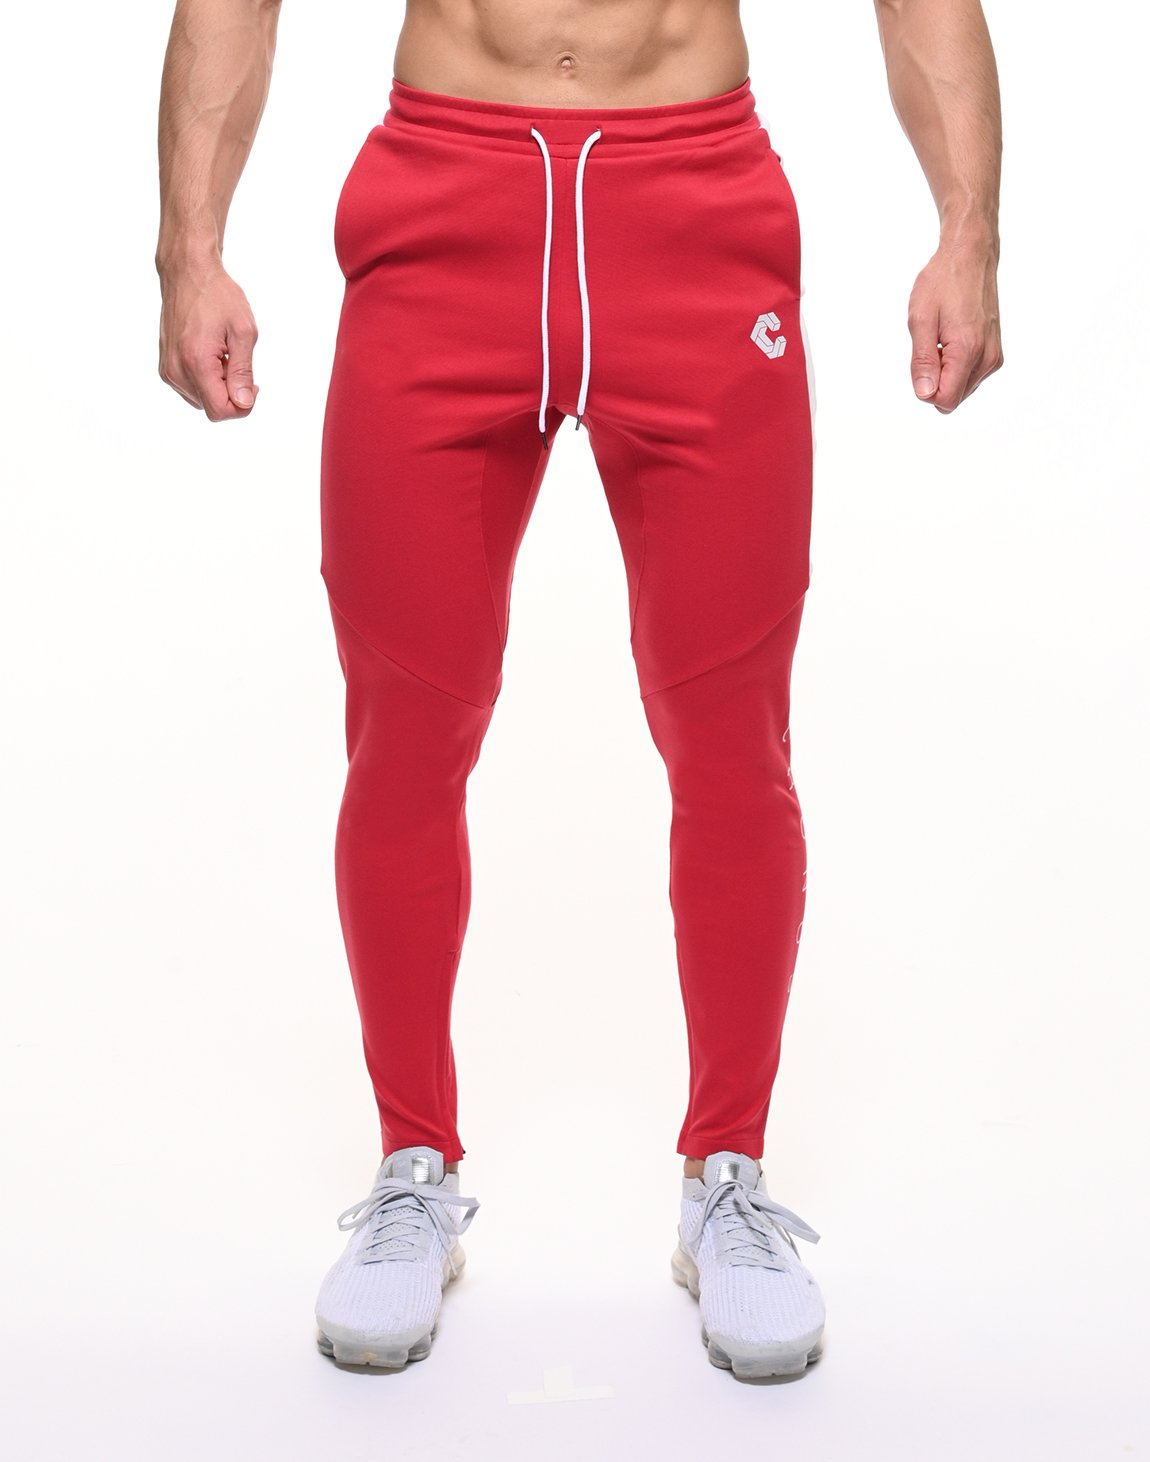 <img class='new_mark_img1' src='https://img.shop-pro.jp/img/new/icons1.gif' style='border:none;display:inline;margin:0px;padding:0px;width:auto;' />CRONOS HALF LINE PANTS【RED】